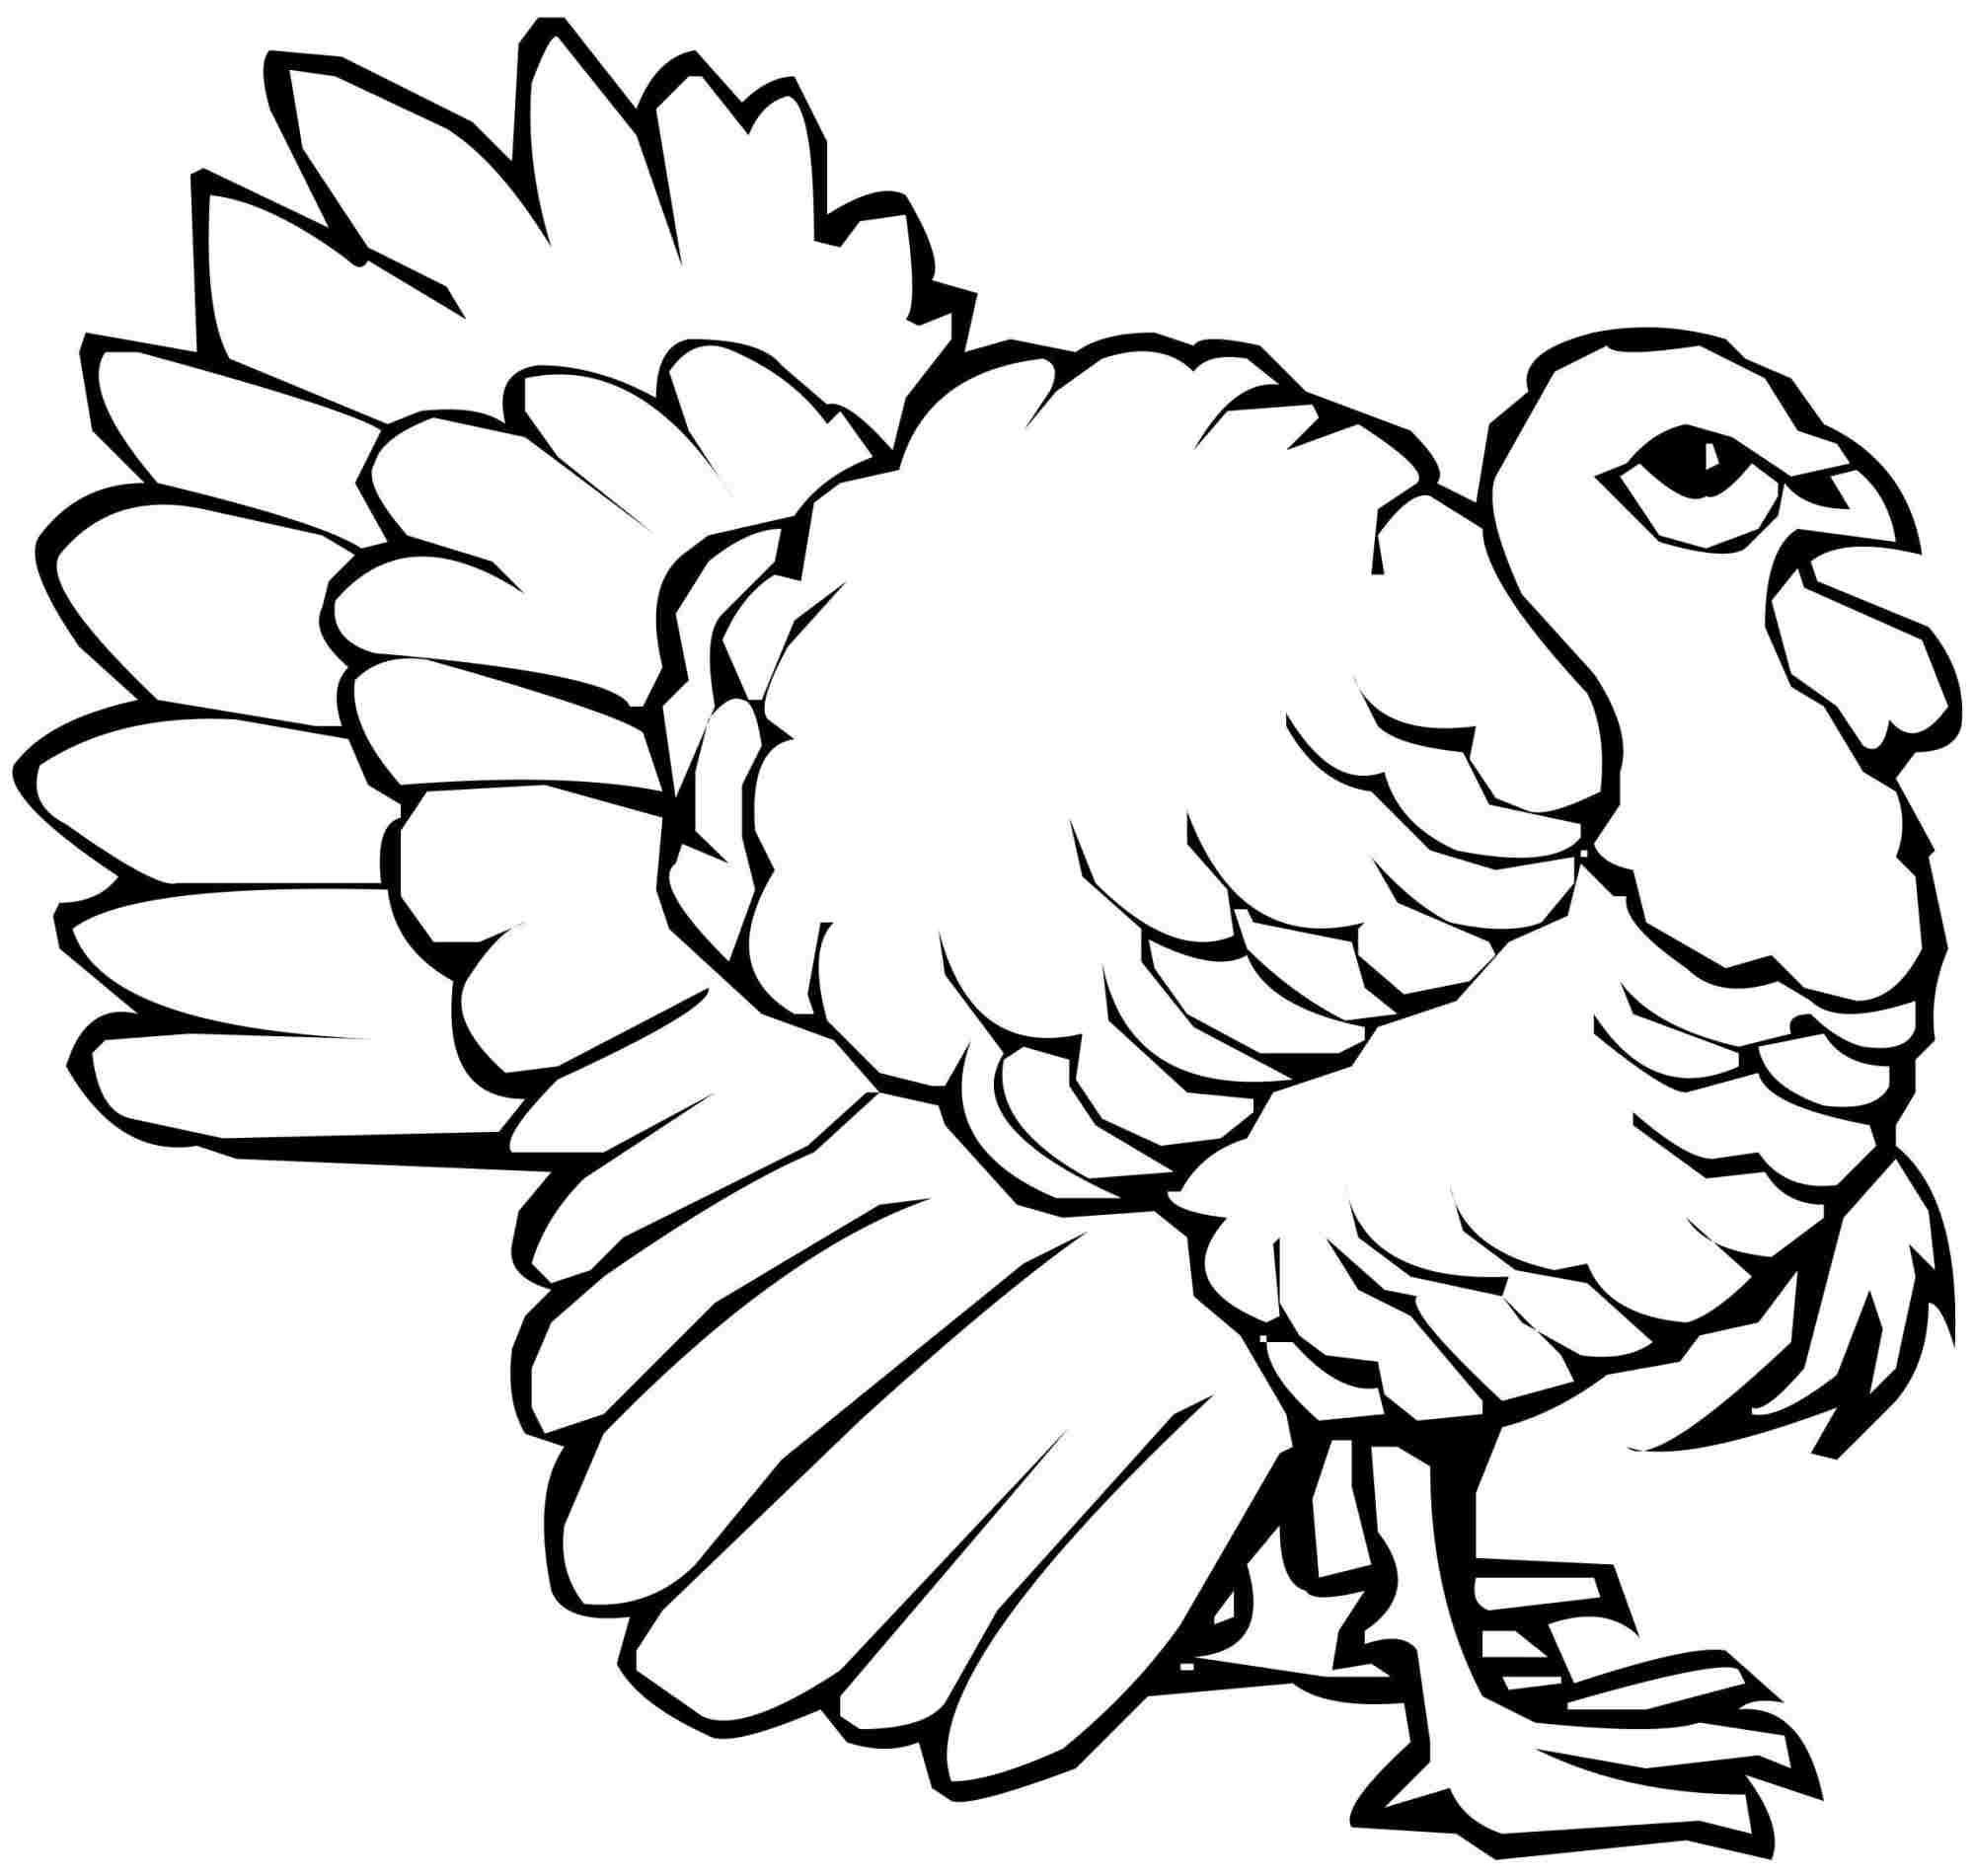 Uncategorized Free Printable Turkey thanksgiving turkey colouring pages for girls boys color boys